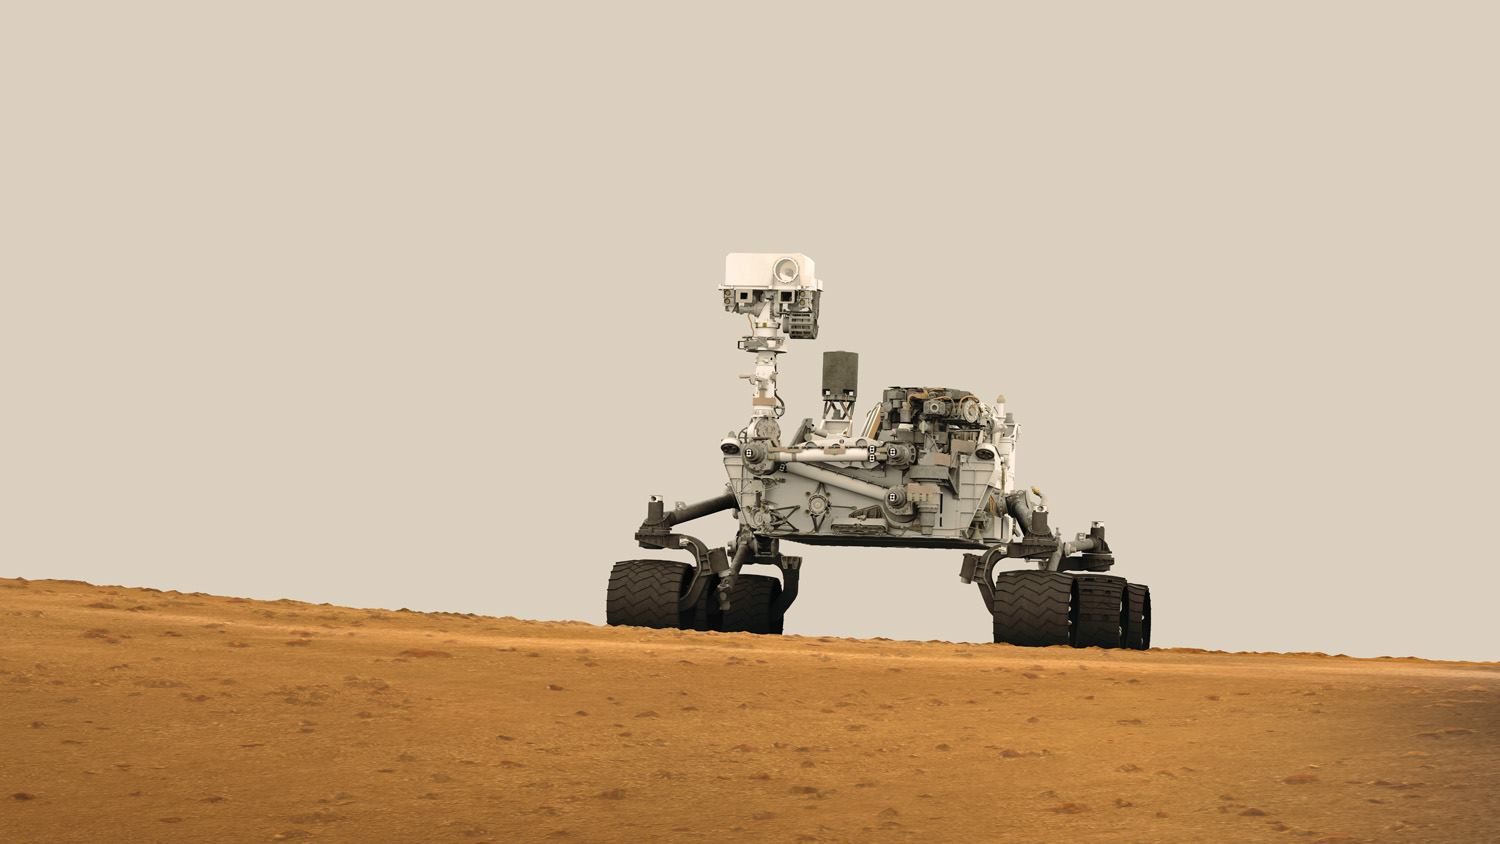 Curiosity Puts Morse Code In Sand As It Makes Its First ...